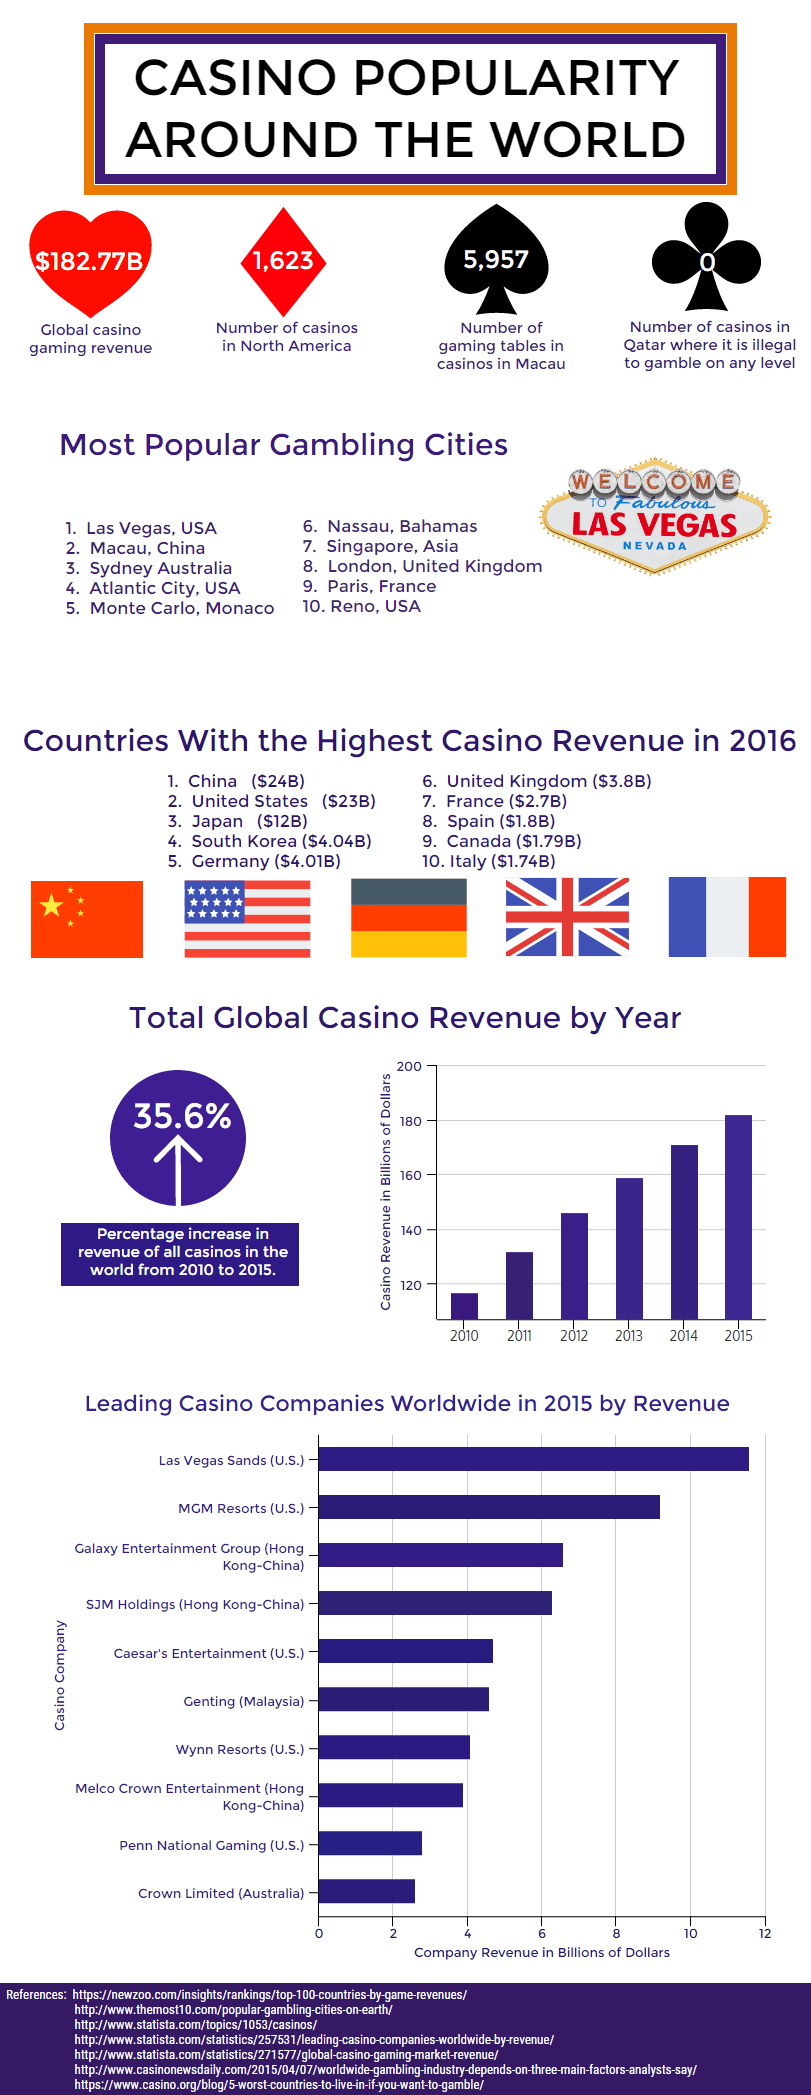 Figures and facts about popularity of casino